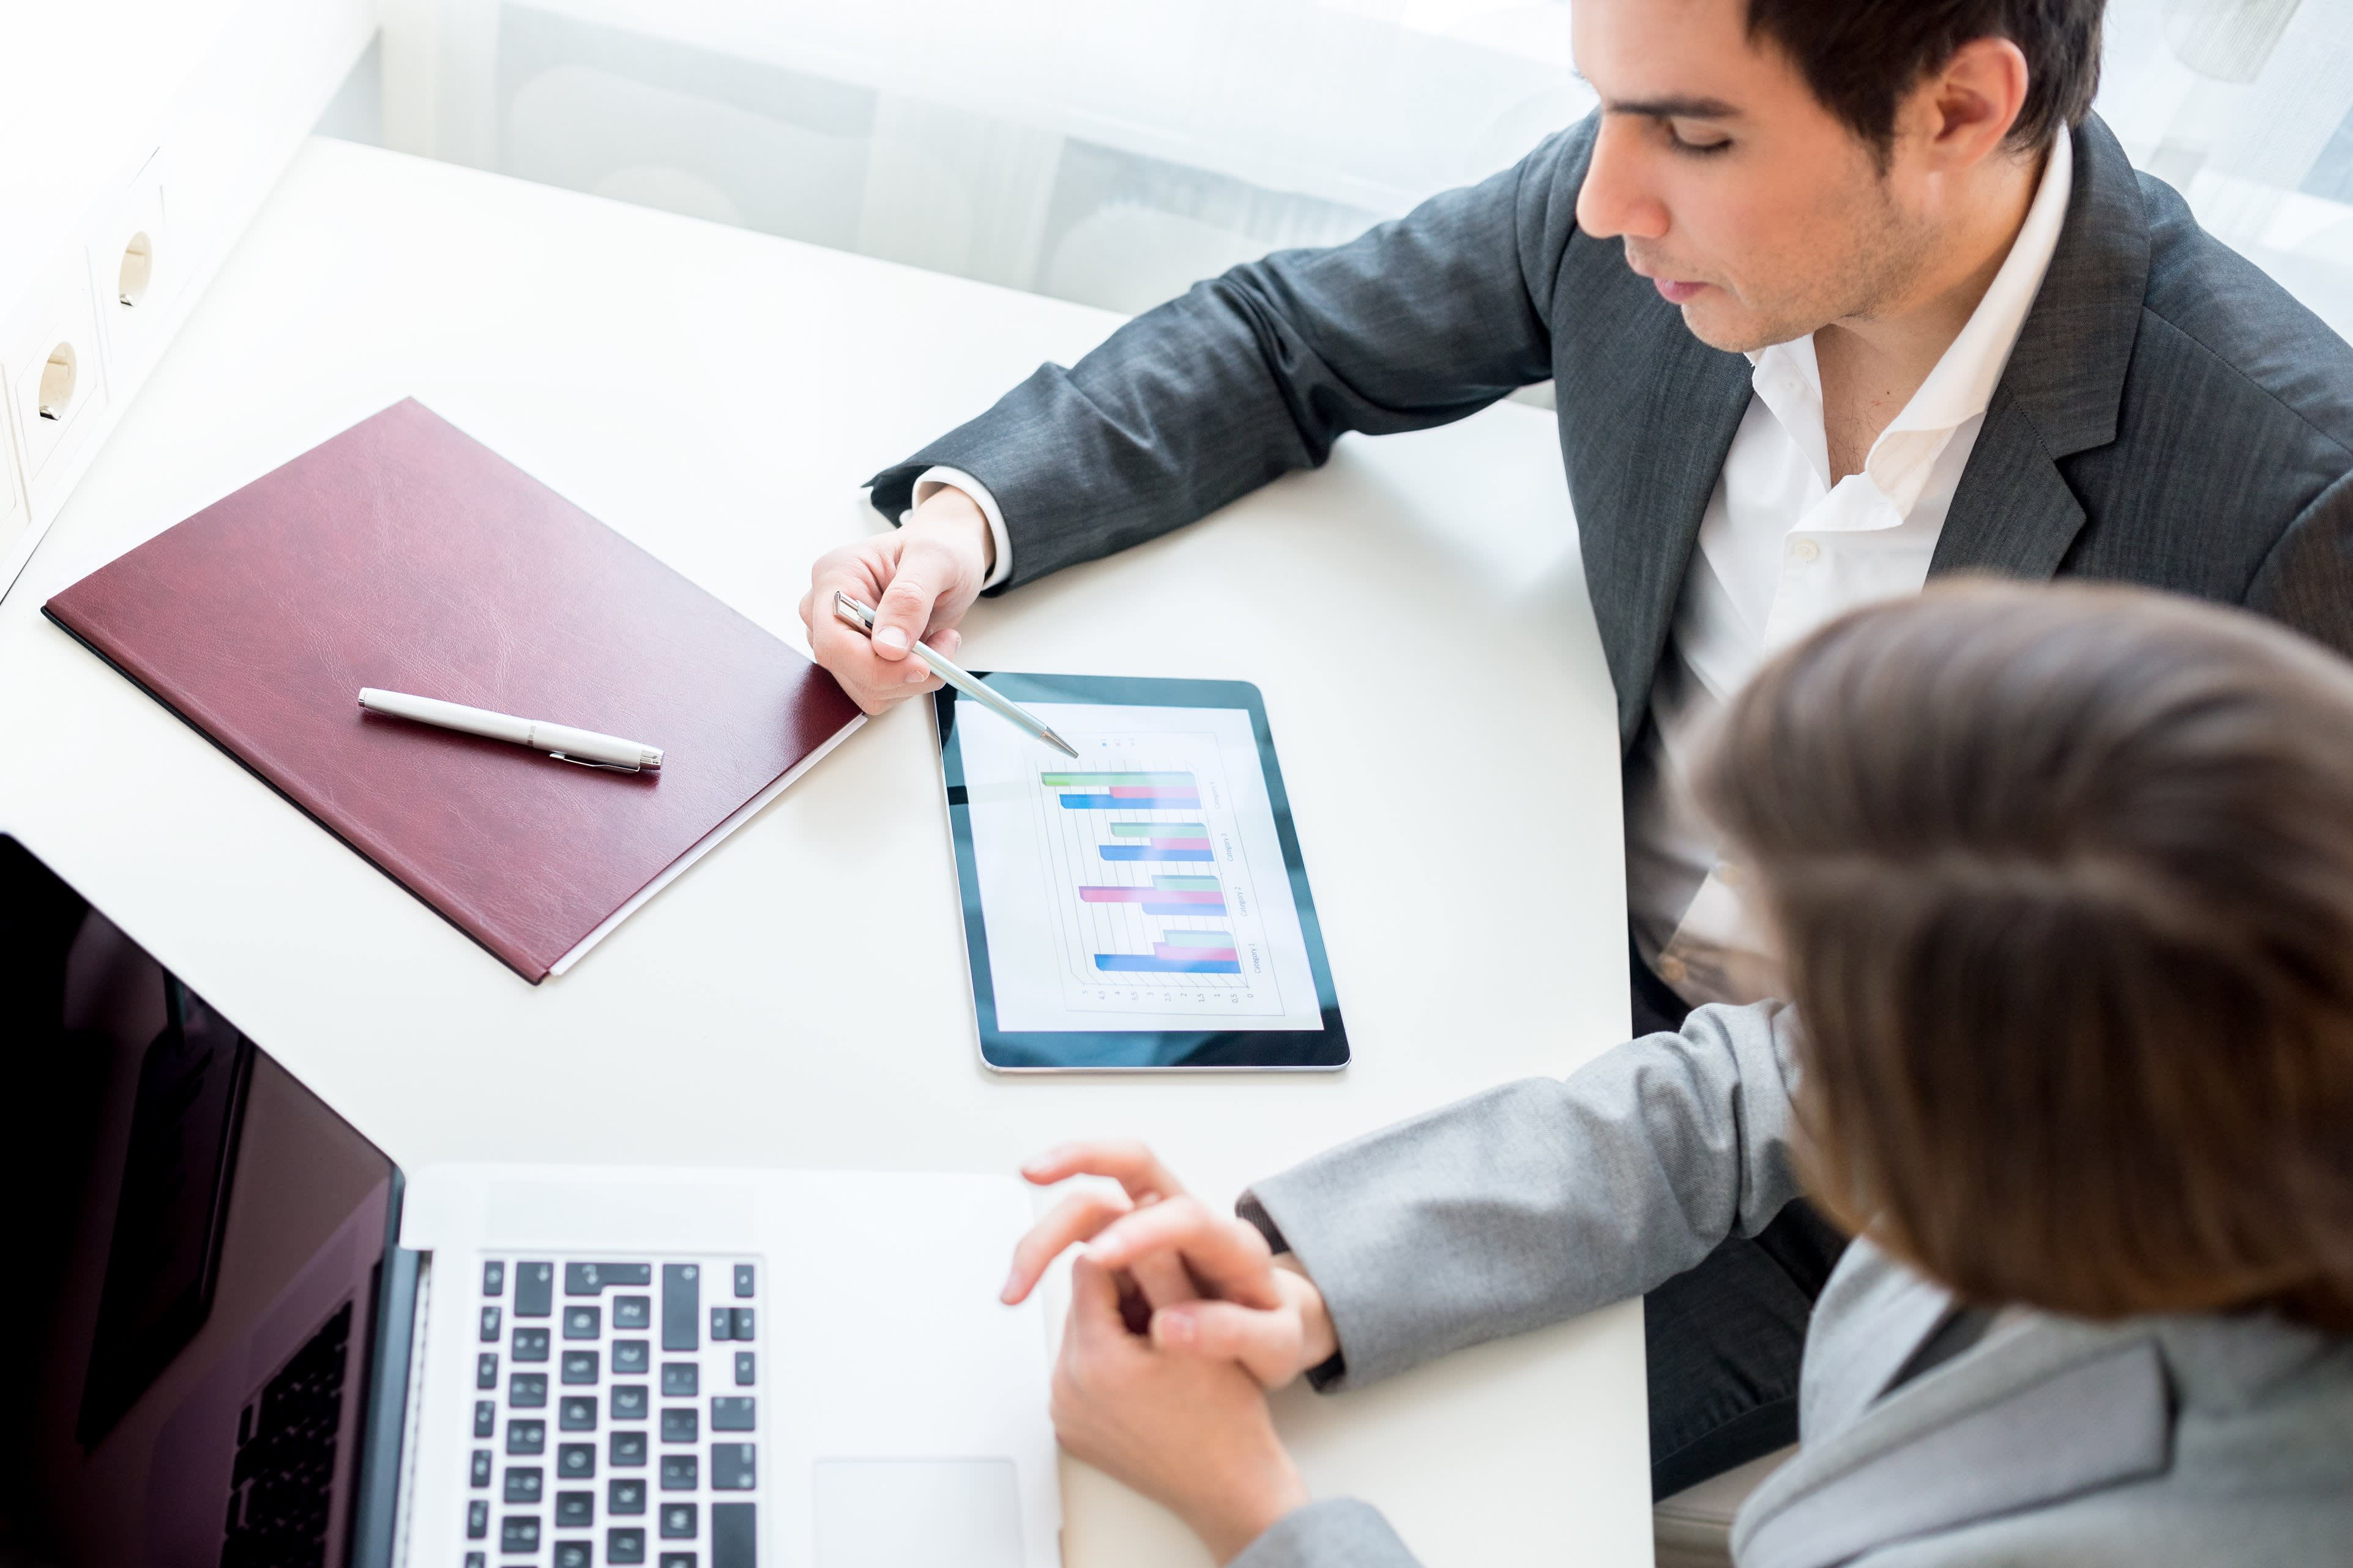 Advice gap to widen as 60% of advisers turn away clients